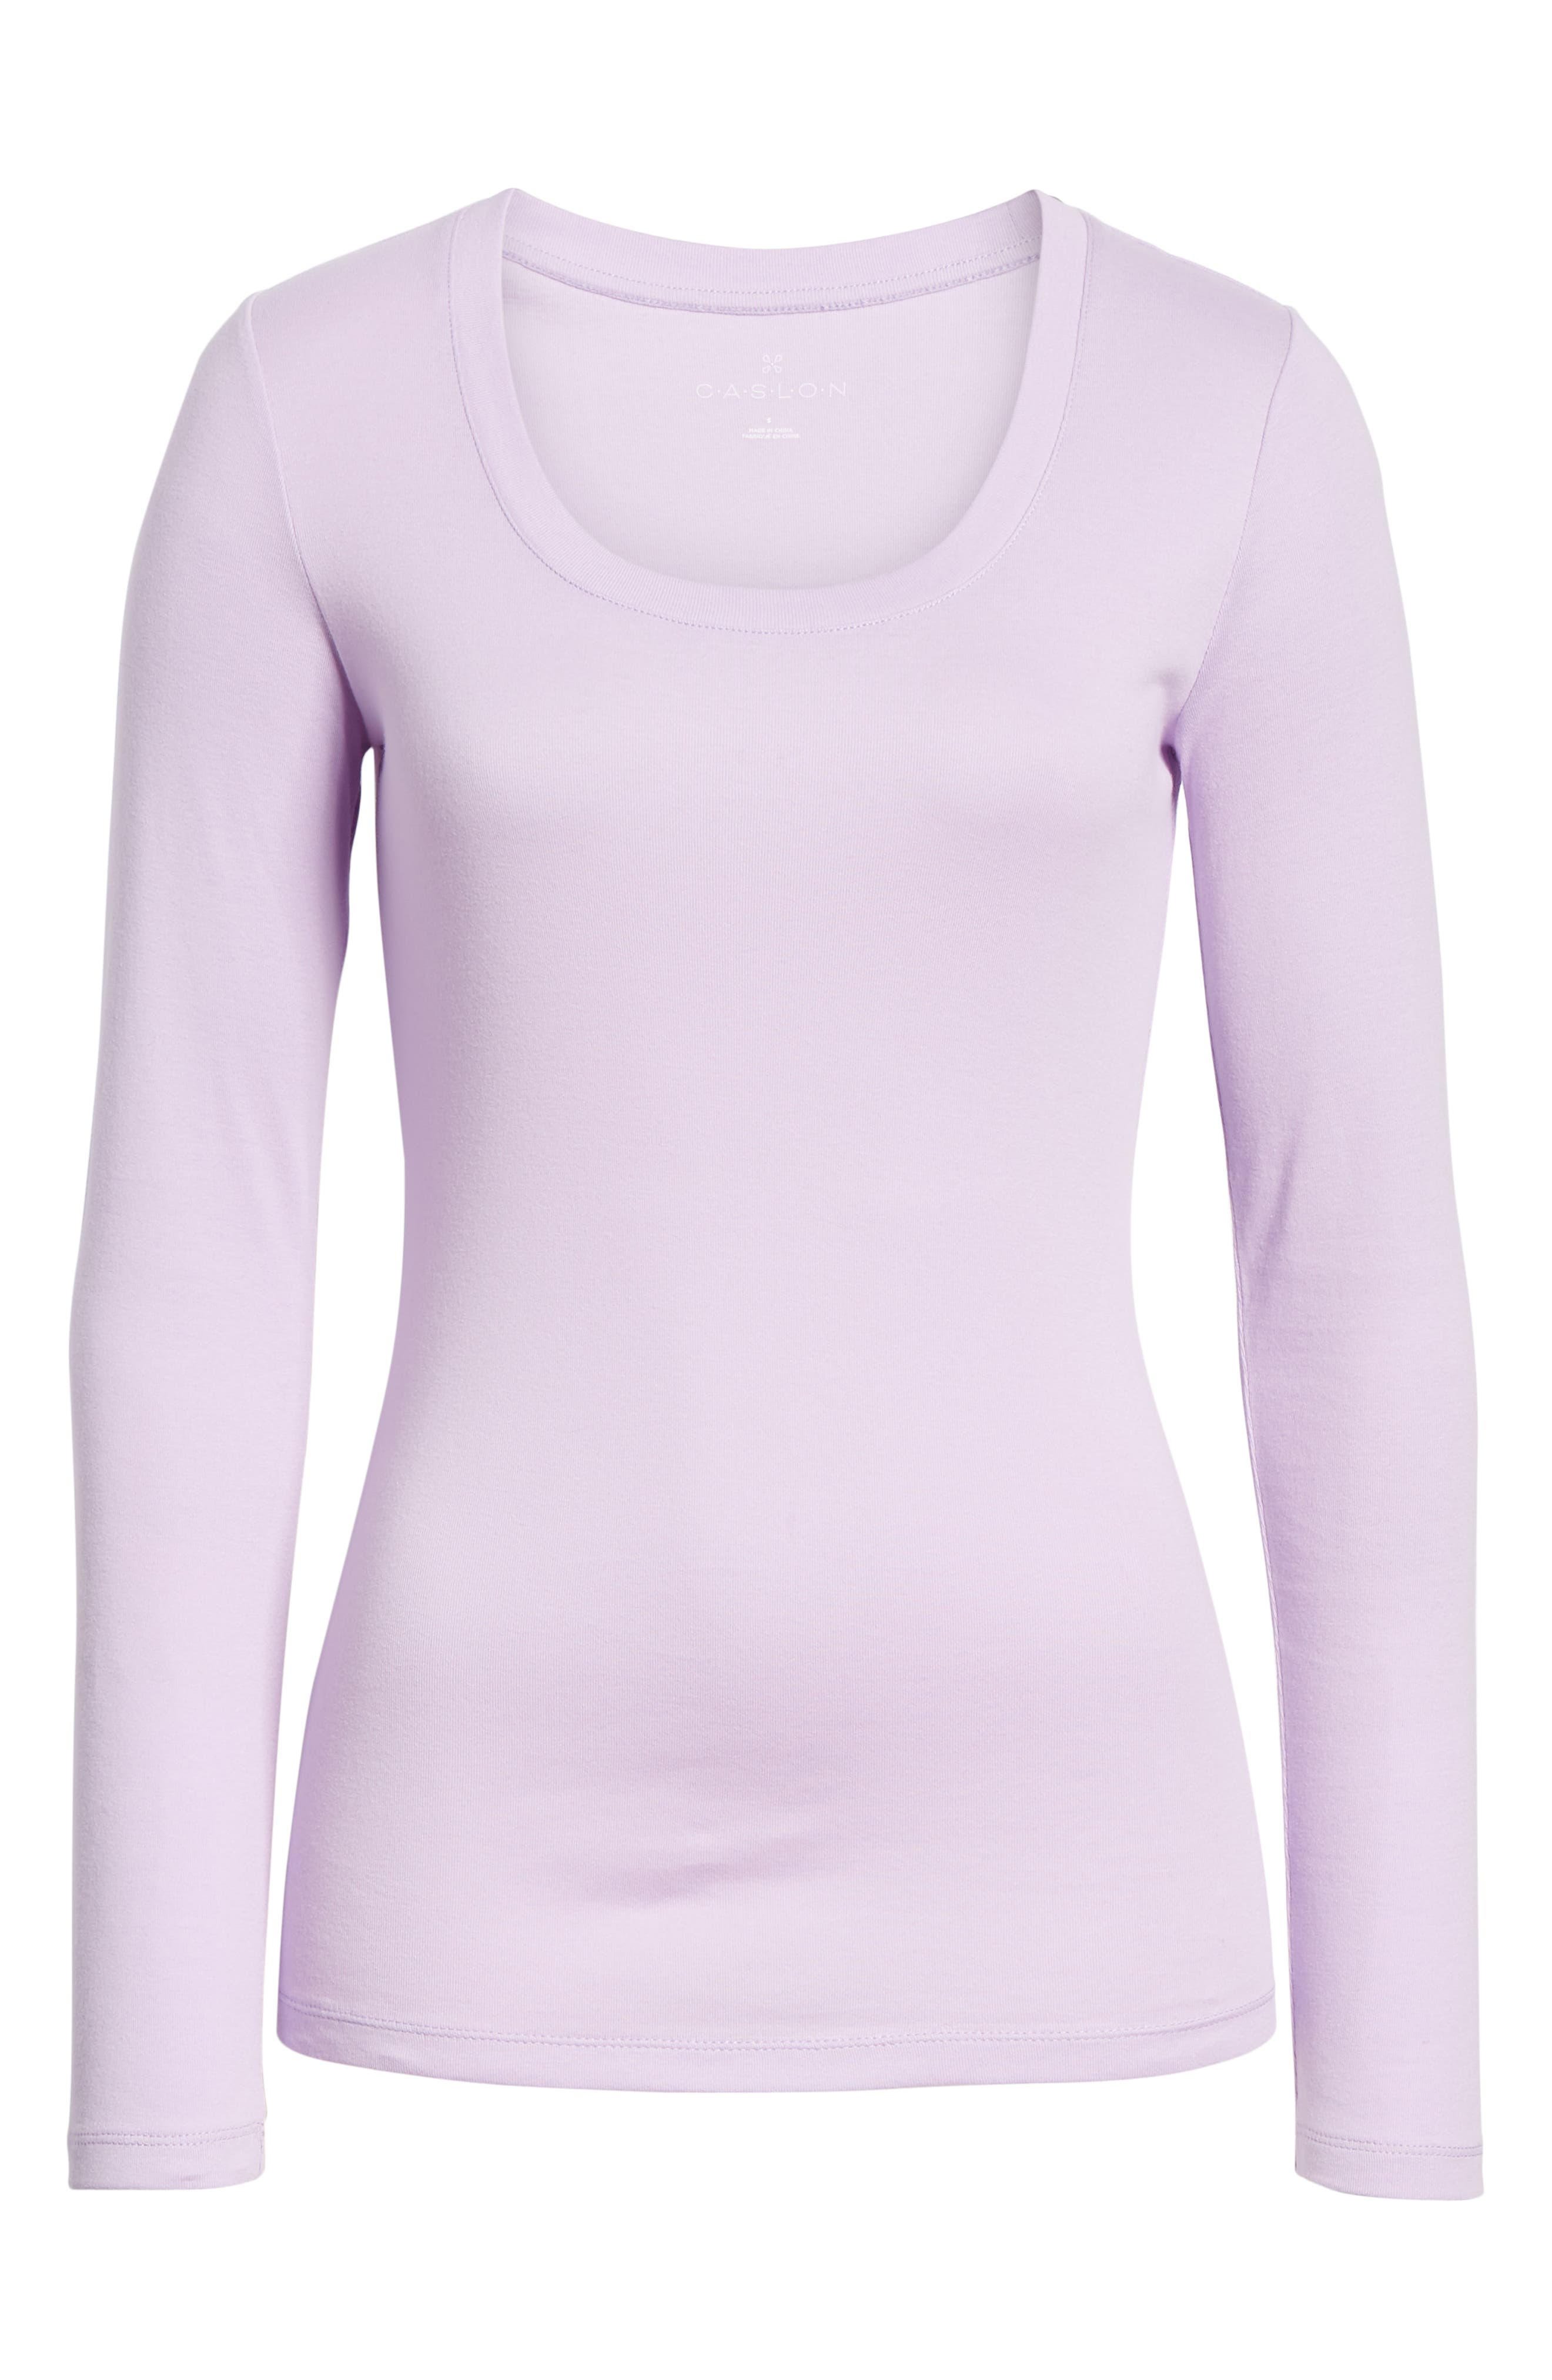 'Melody' Long Sleeve Scoop Neck Tee,                             Alternate thumbnail 7, color,                             530